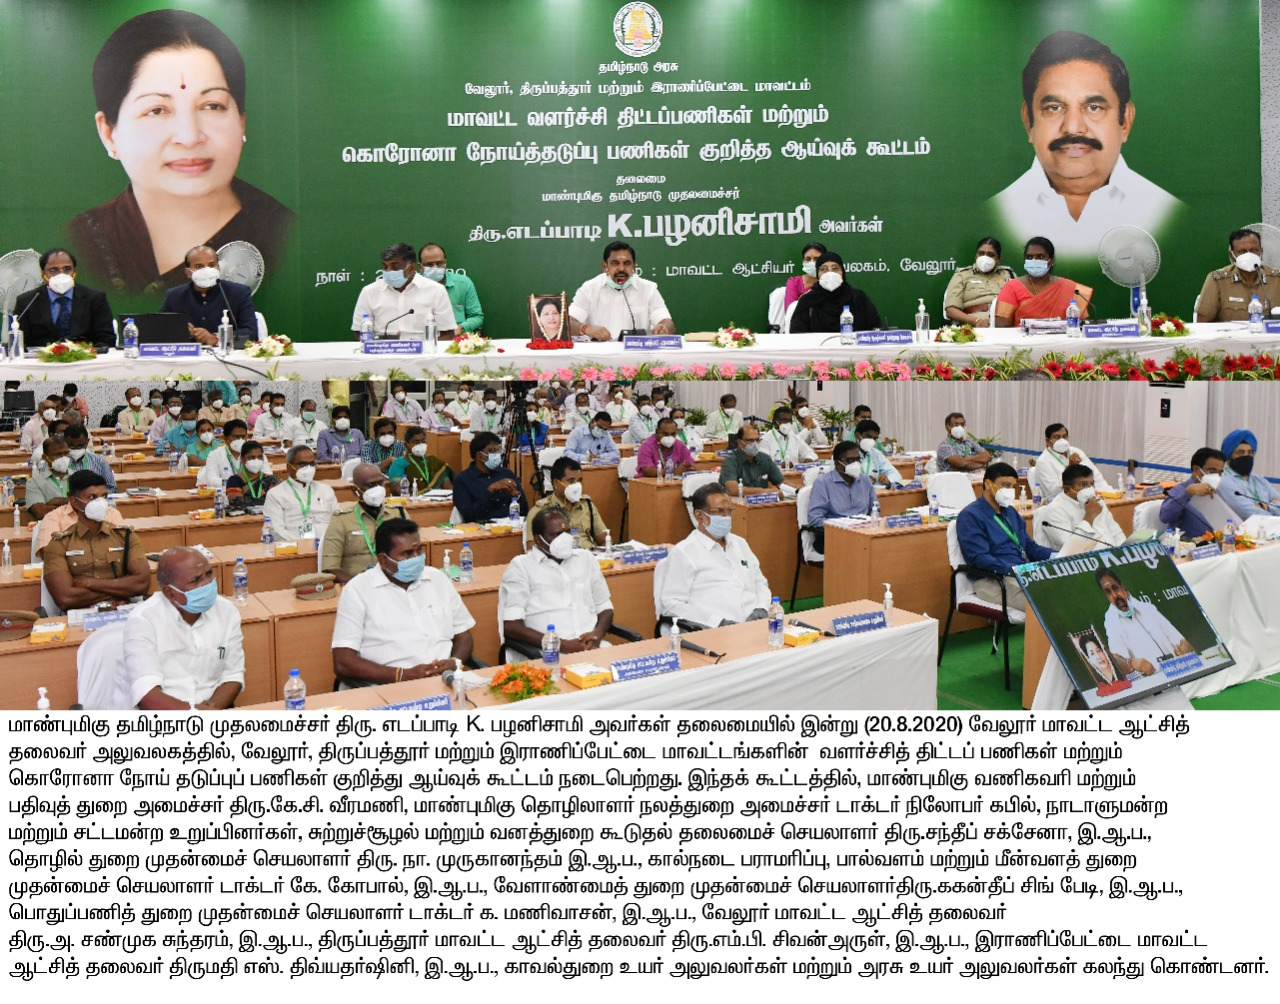 Hon'ble Chief Minister of Tamil Nadu Chaired a Review Meeting on Development Projects